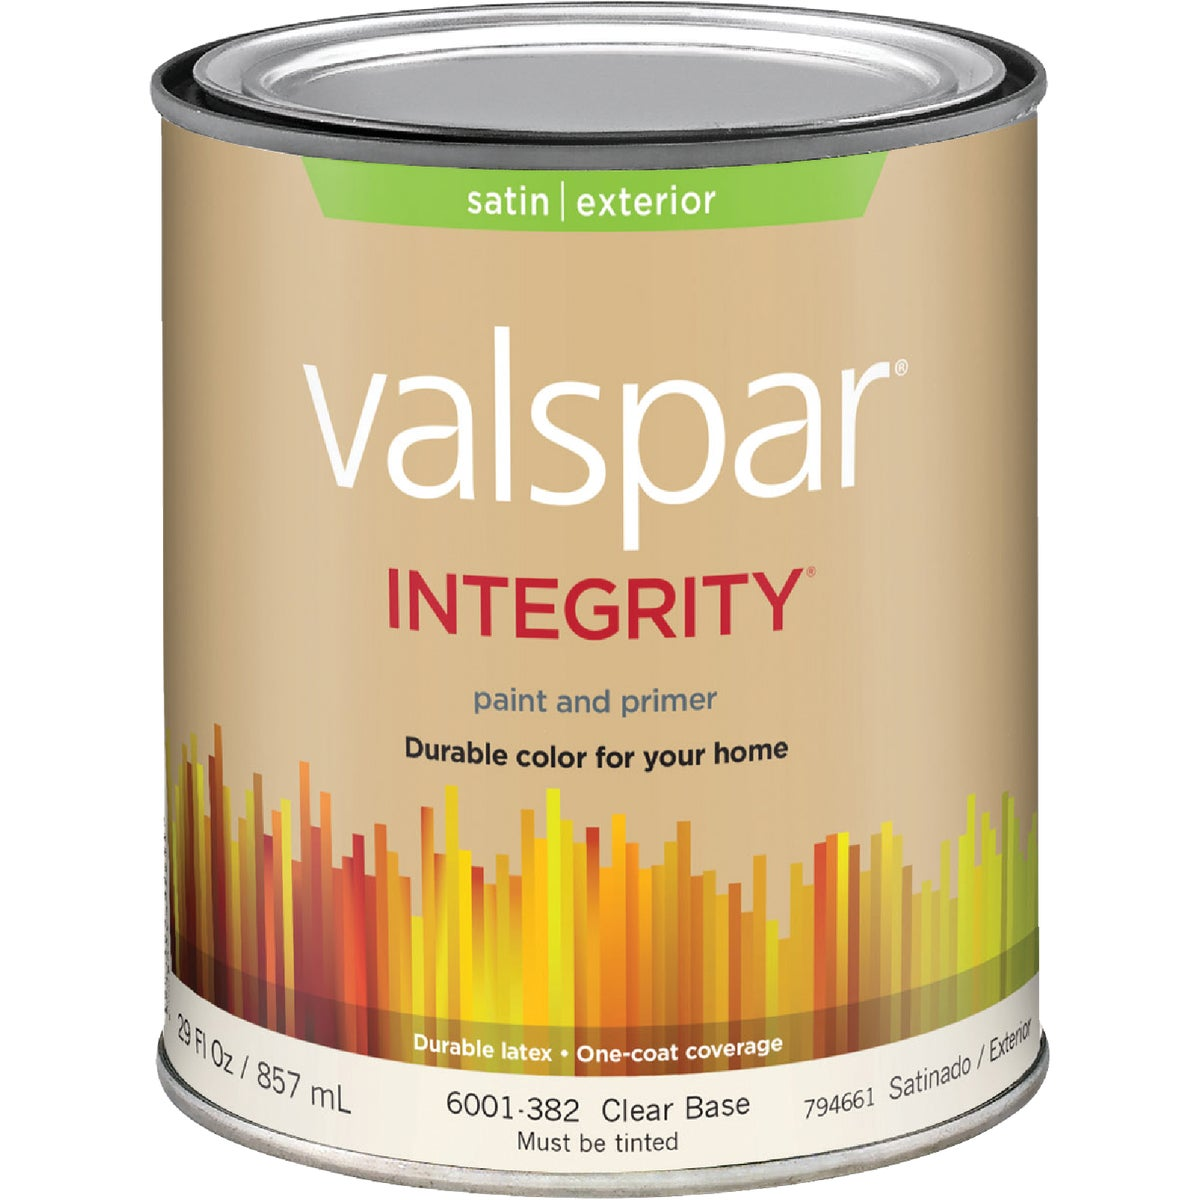 EXT SAT CLEAR BS PAINT - 004.6001382.005 by Valspar Corp